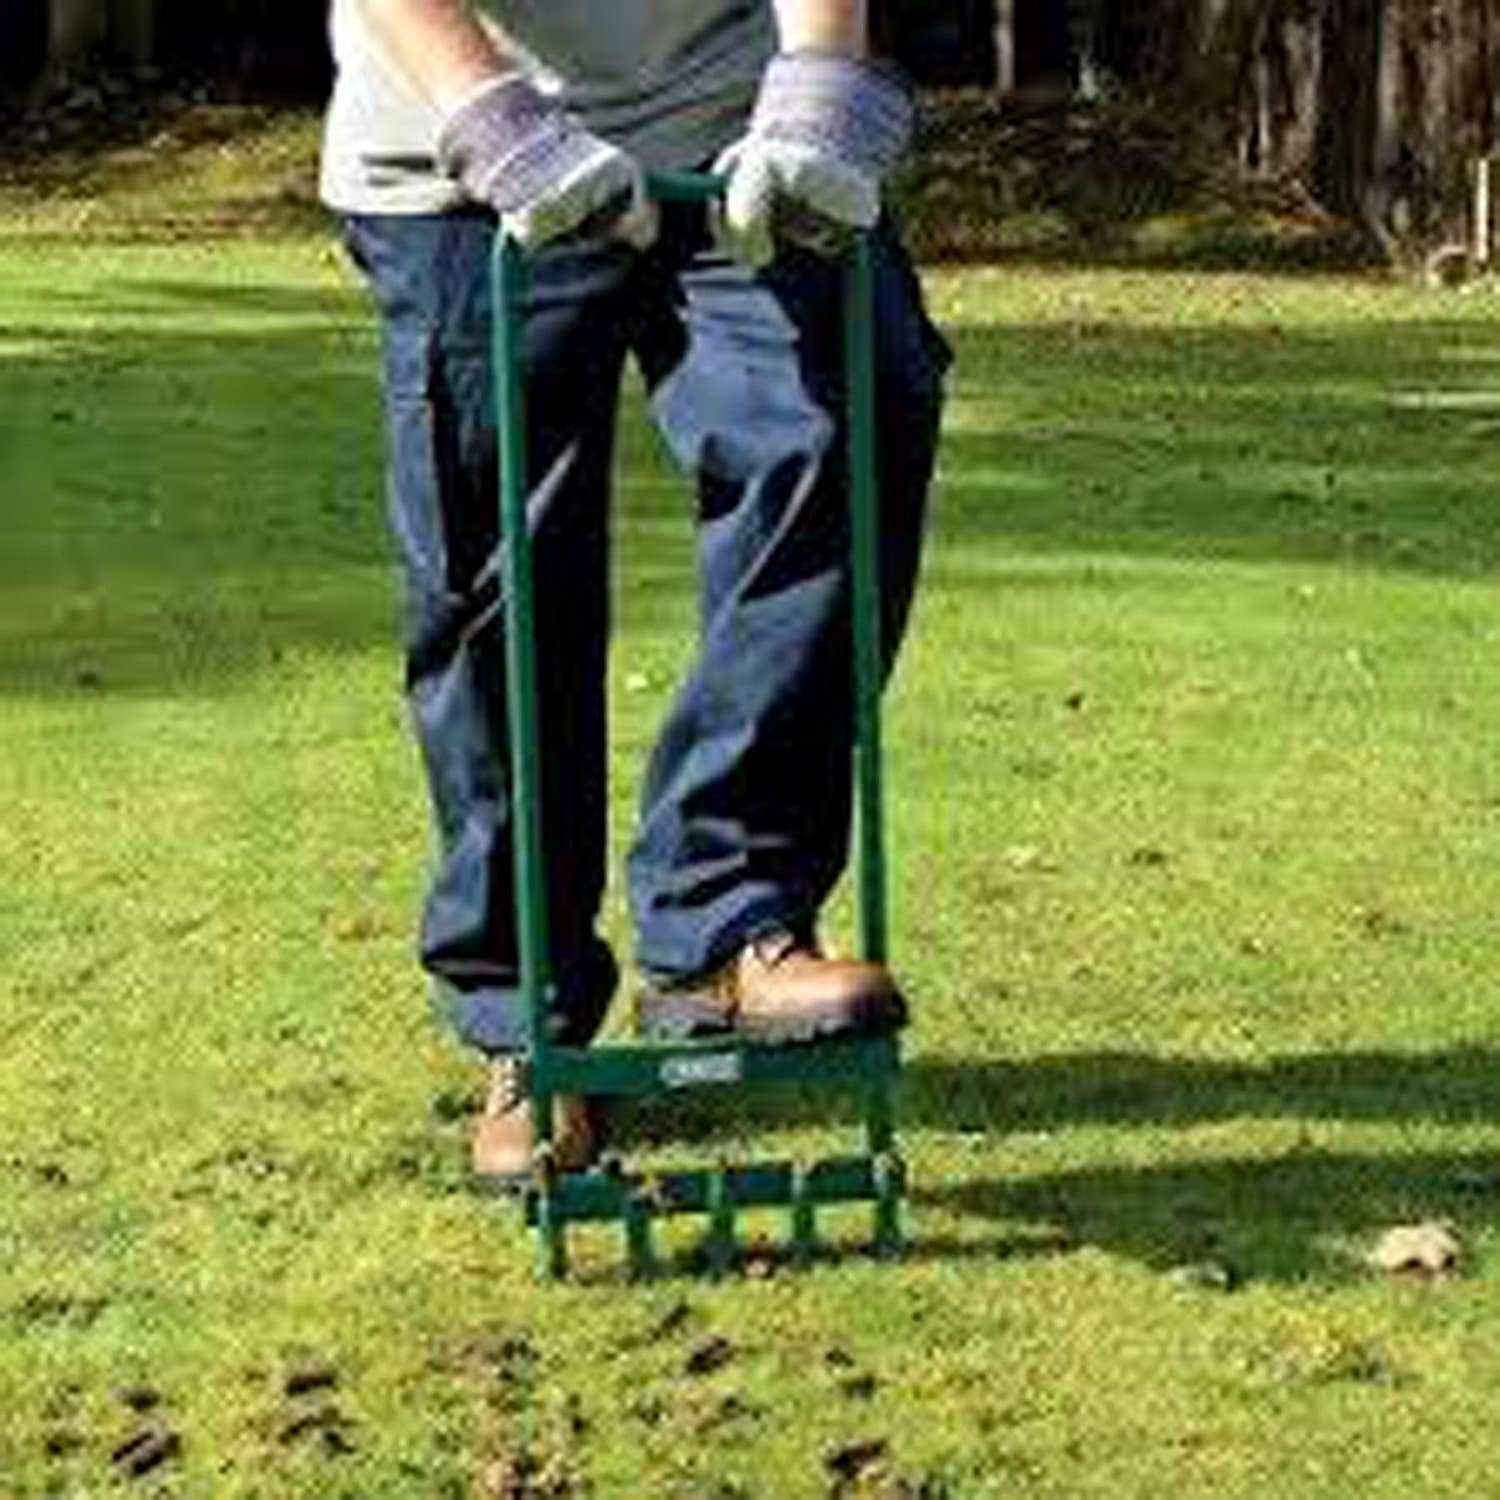 Grass Aerator Aleko Steel Hollow Tine Garden Green Lawn Aerator With 5 Tines